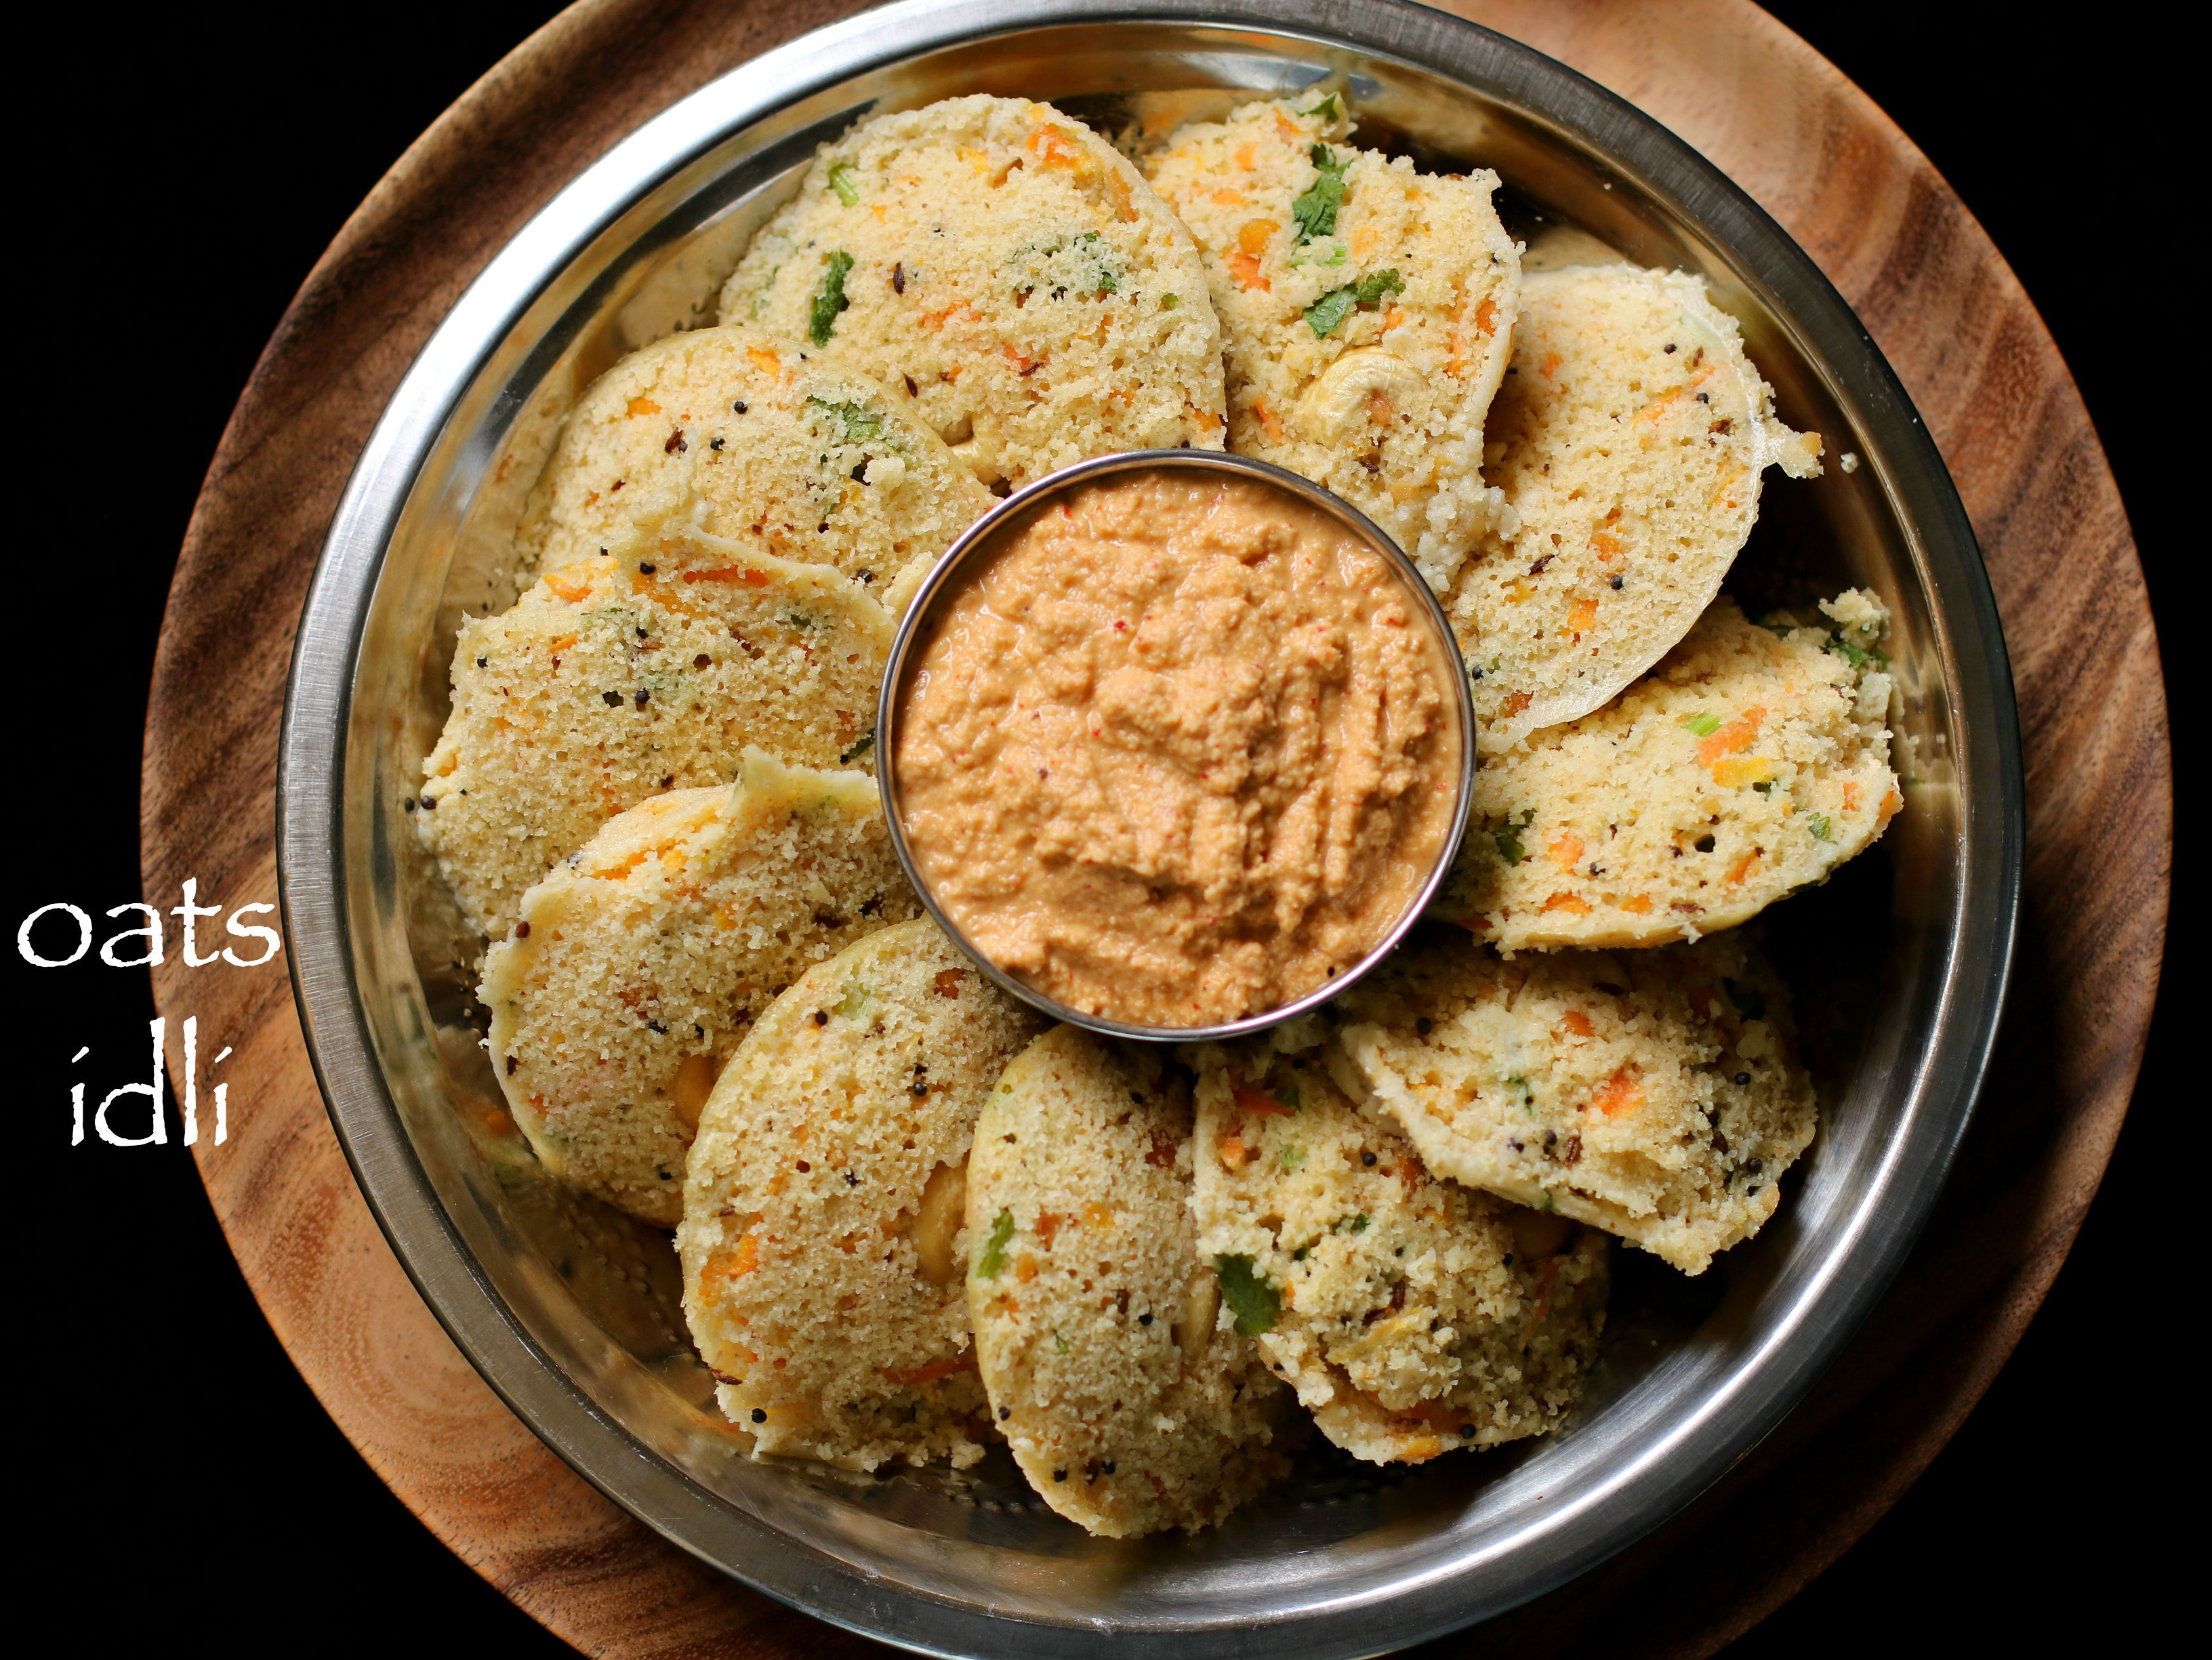 Oats idli recipe instant oats idli recipe masala oats idli recipe delicious oats idli oats vegetable steamed cake is a very healthy breakfast recipe with lots of benefits these fibre rich oats and rava idli are very forumfinder Images